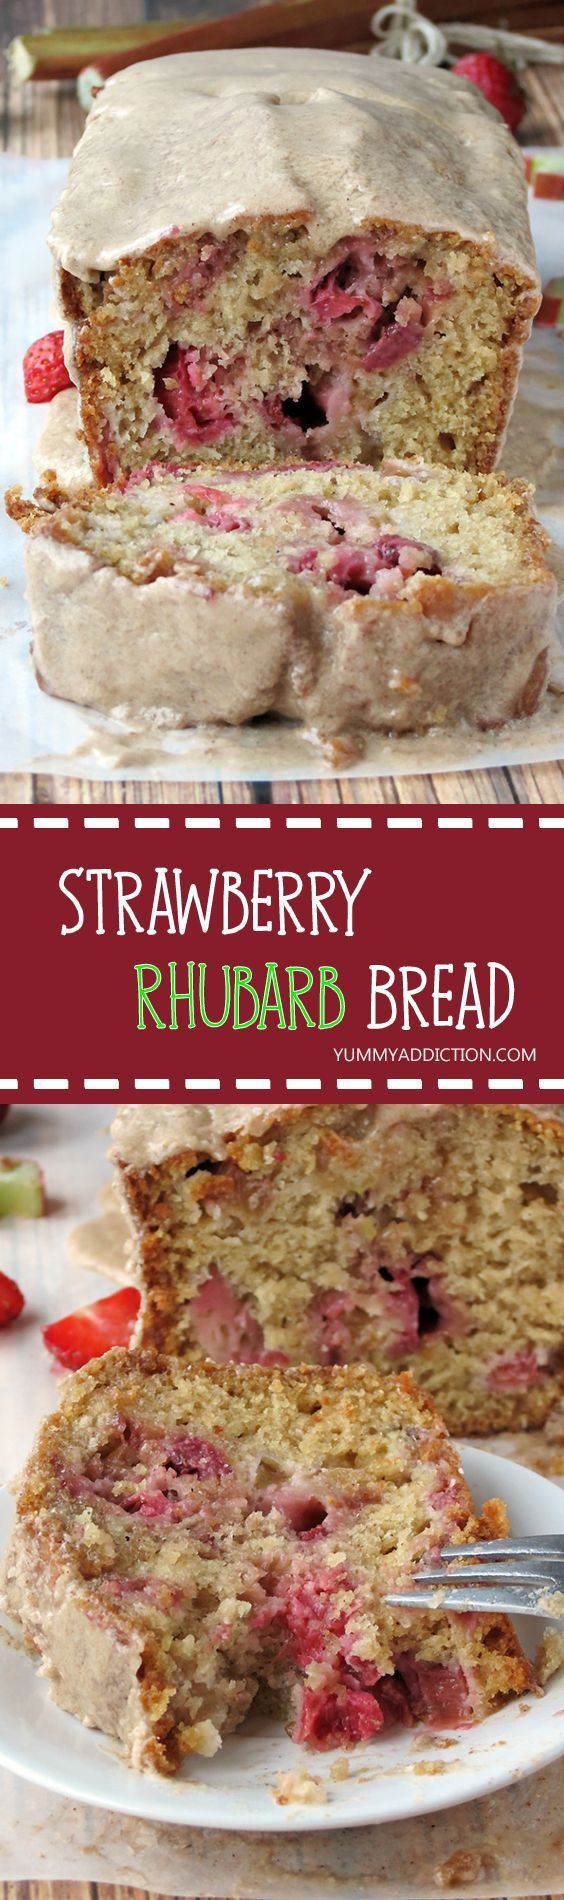 Strawberry Rhubarb Bread Drizzled With Maple Cinnamon Glaze | YummyAddiction.com